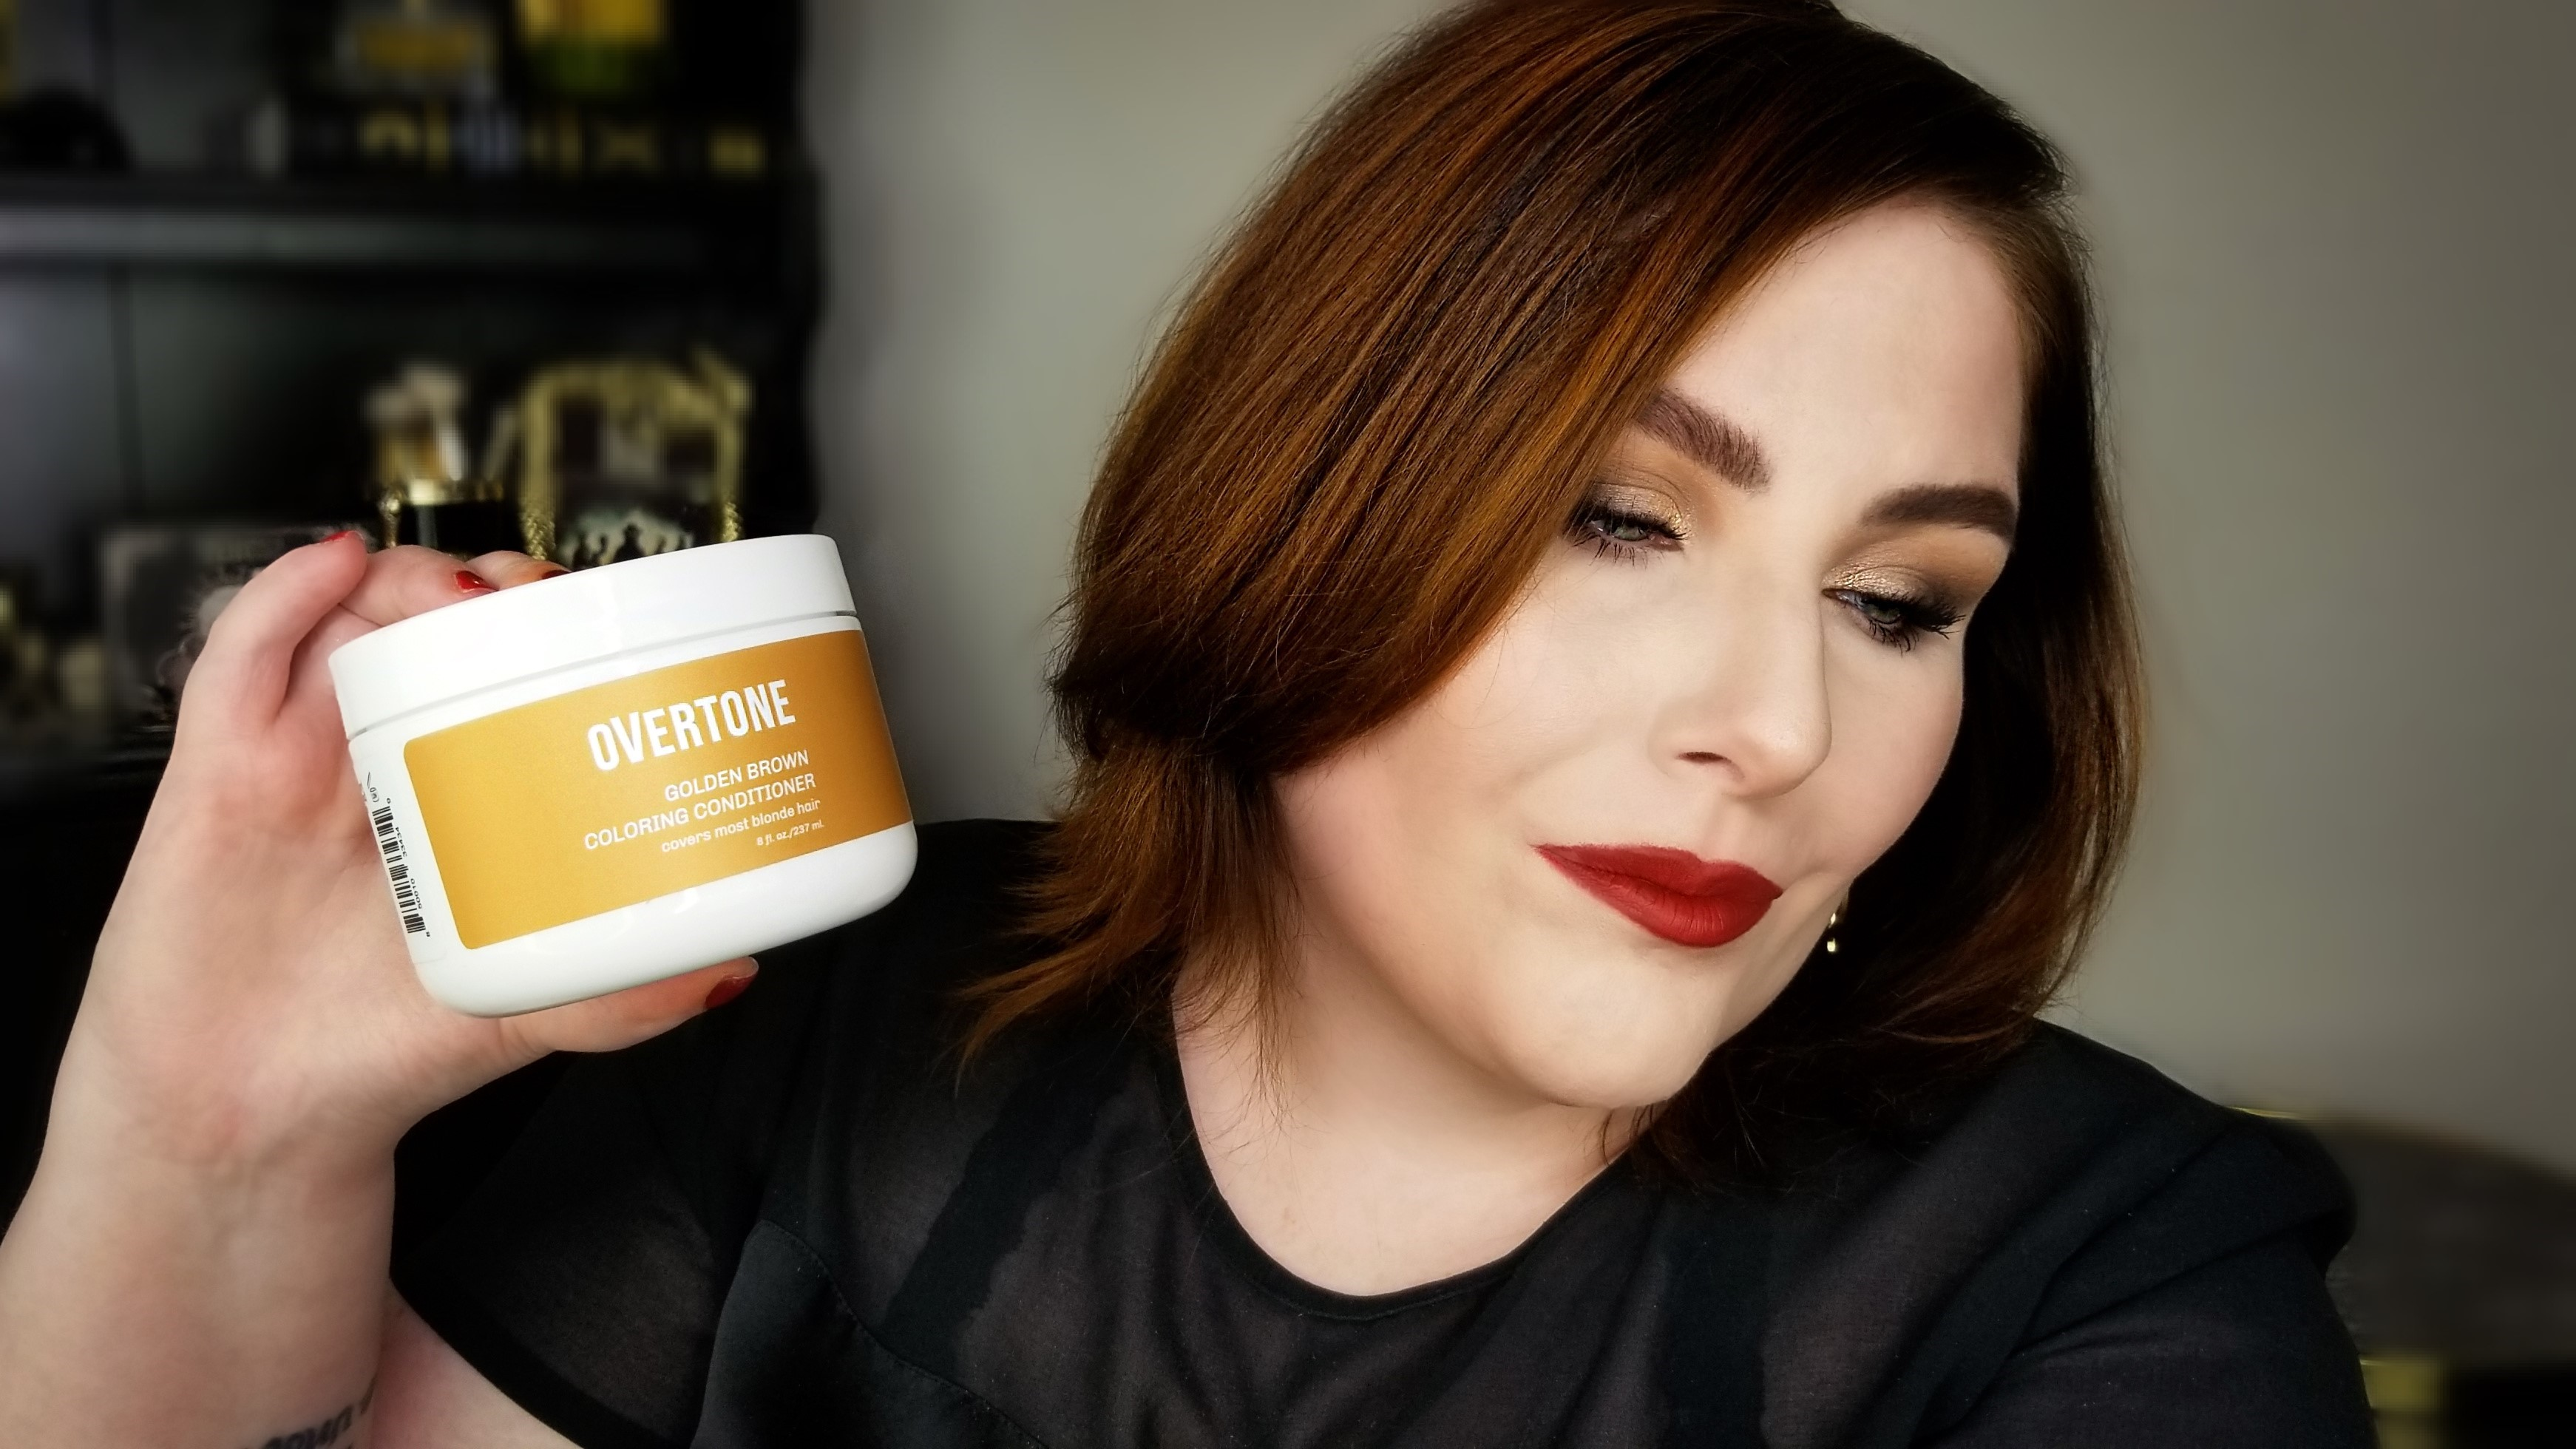 Overtone Conditioning Color in Golden Brown